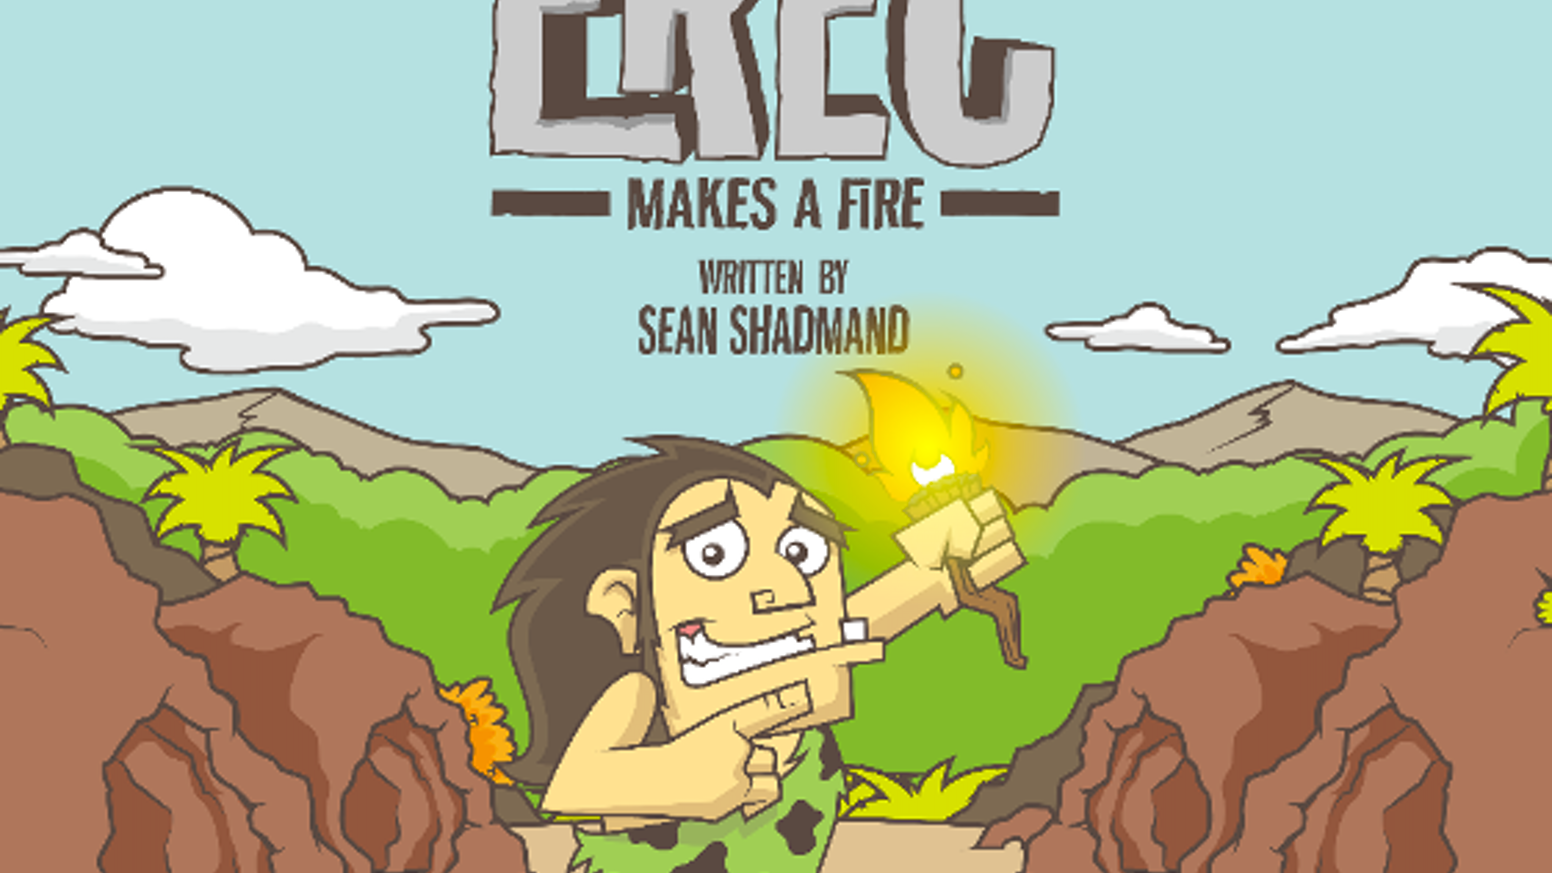 A children's book about the first startup in history. Help bring the spirit of entrepreneurism home to kids ages 3-8.